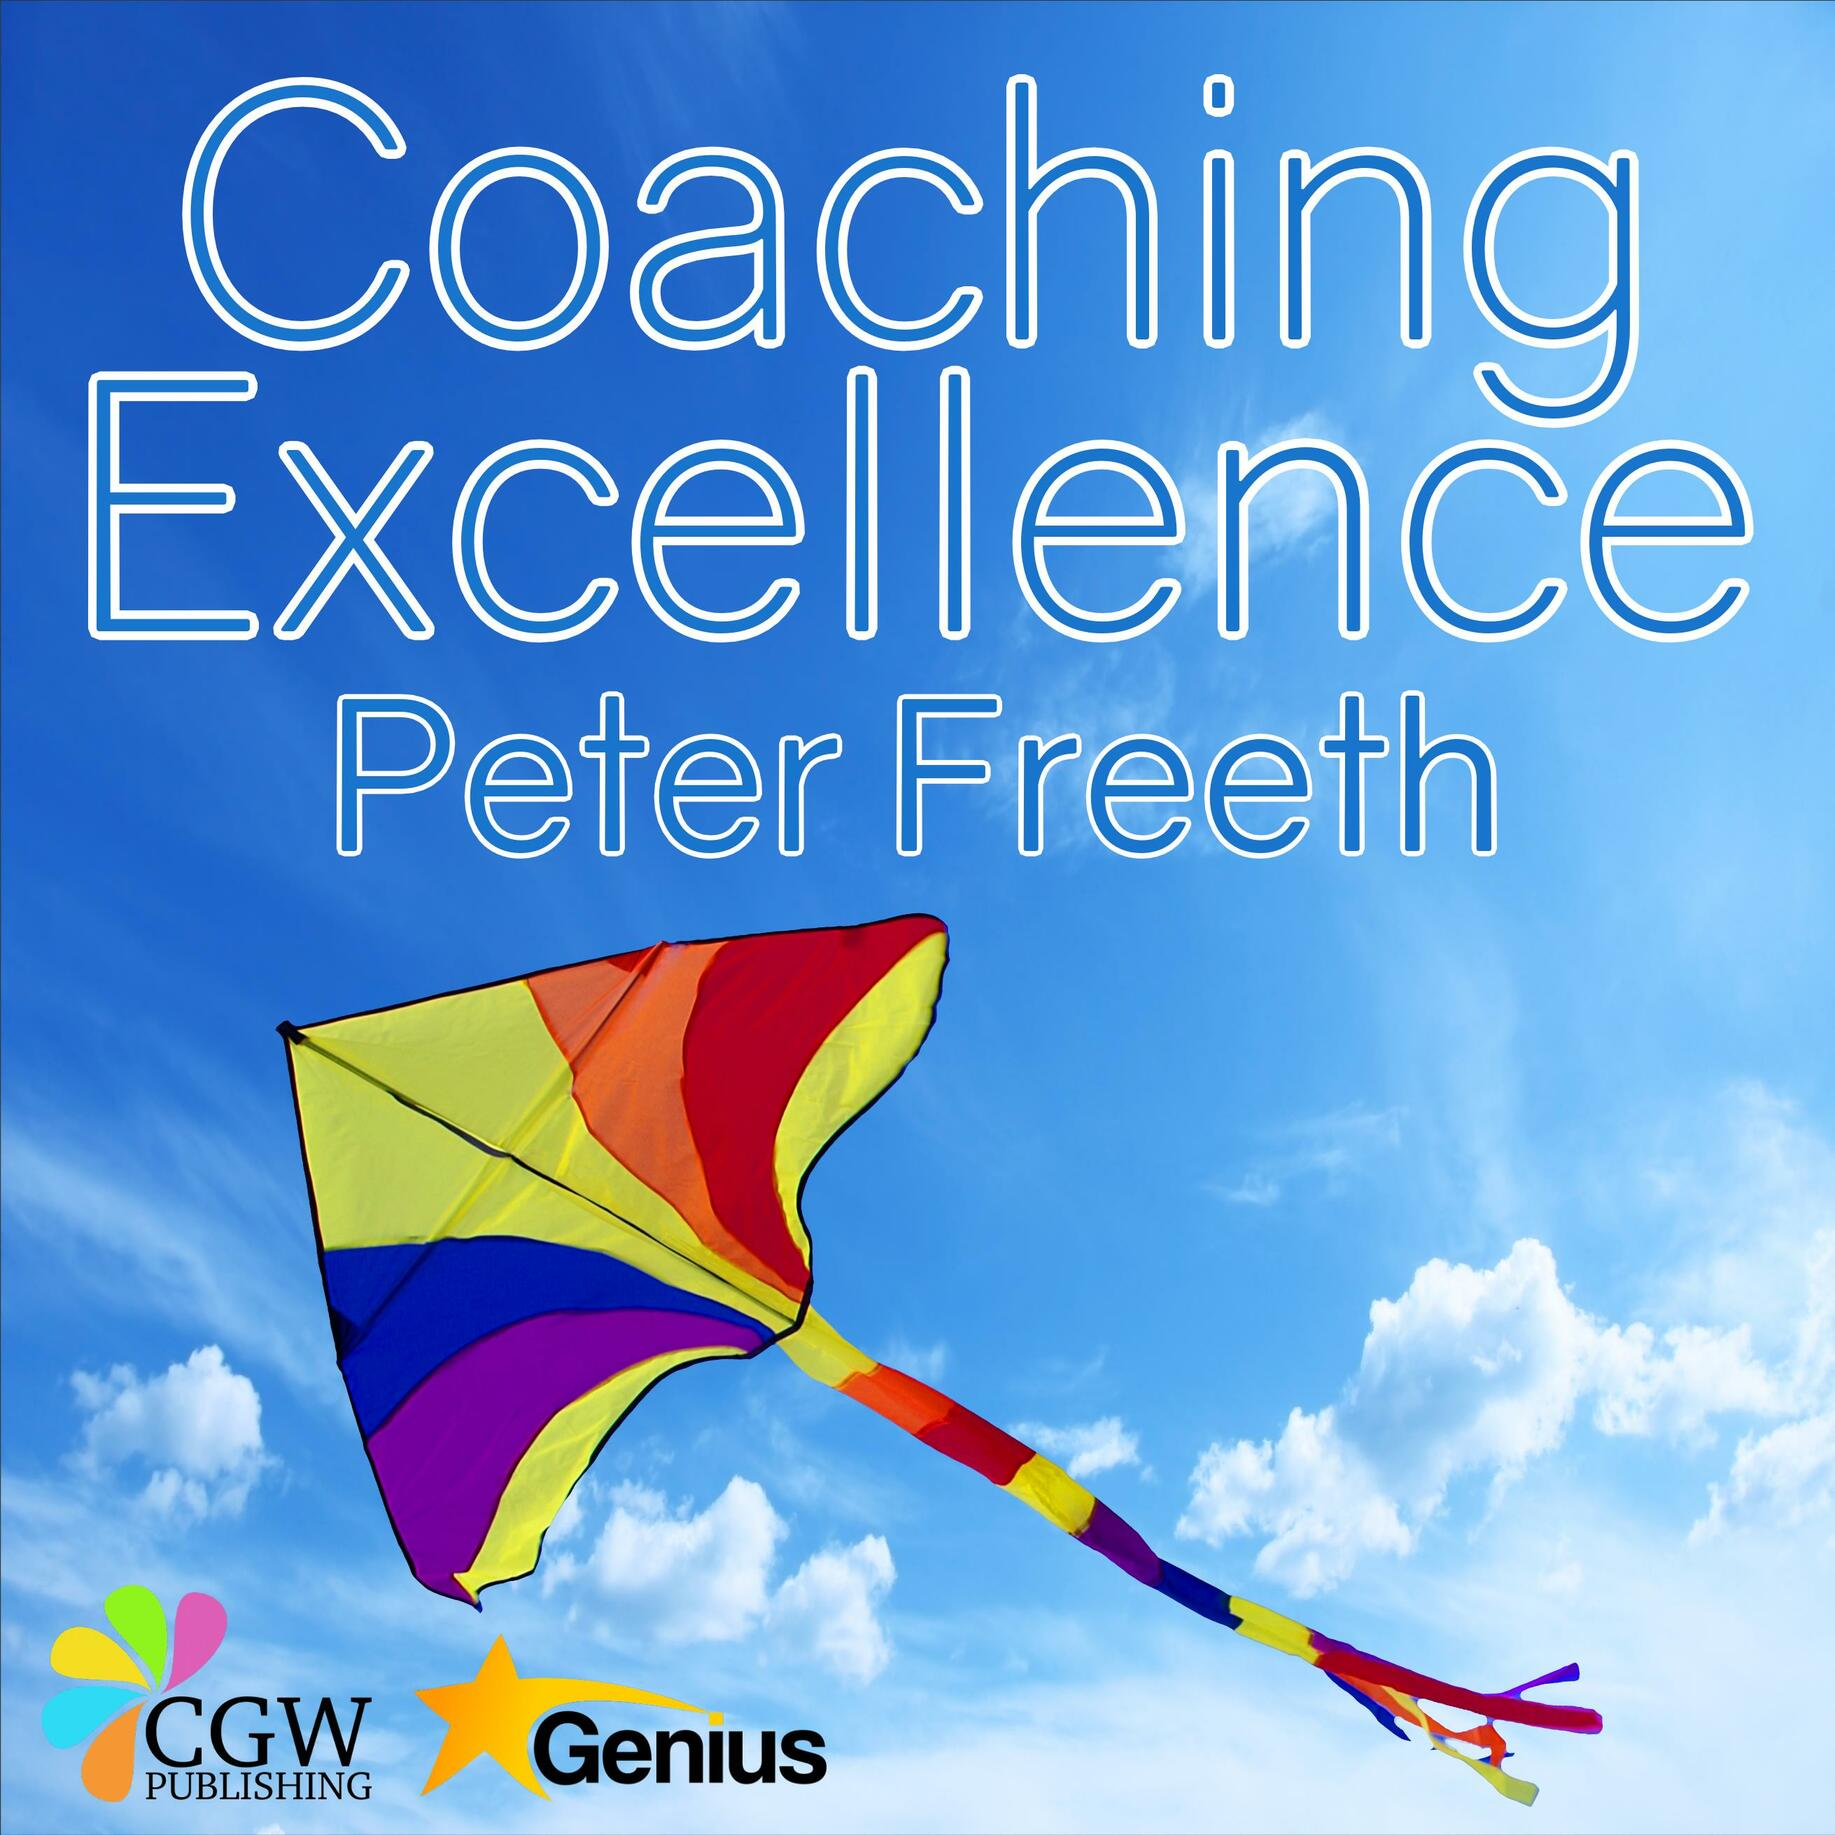 Coaching Excellence - Audiobook - by Peter Freeth. Coaching Excellence by Peter Freeth. Move Beyond Coaching Models and Learn to Create Powerful Change. This masterclass will give you the three missing pieces of the coaching puzzle, and show you how to make that magical connection with your clients, so that your work with them will be faster, easier and more rewarding for both of you.